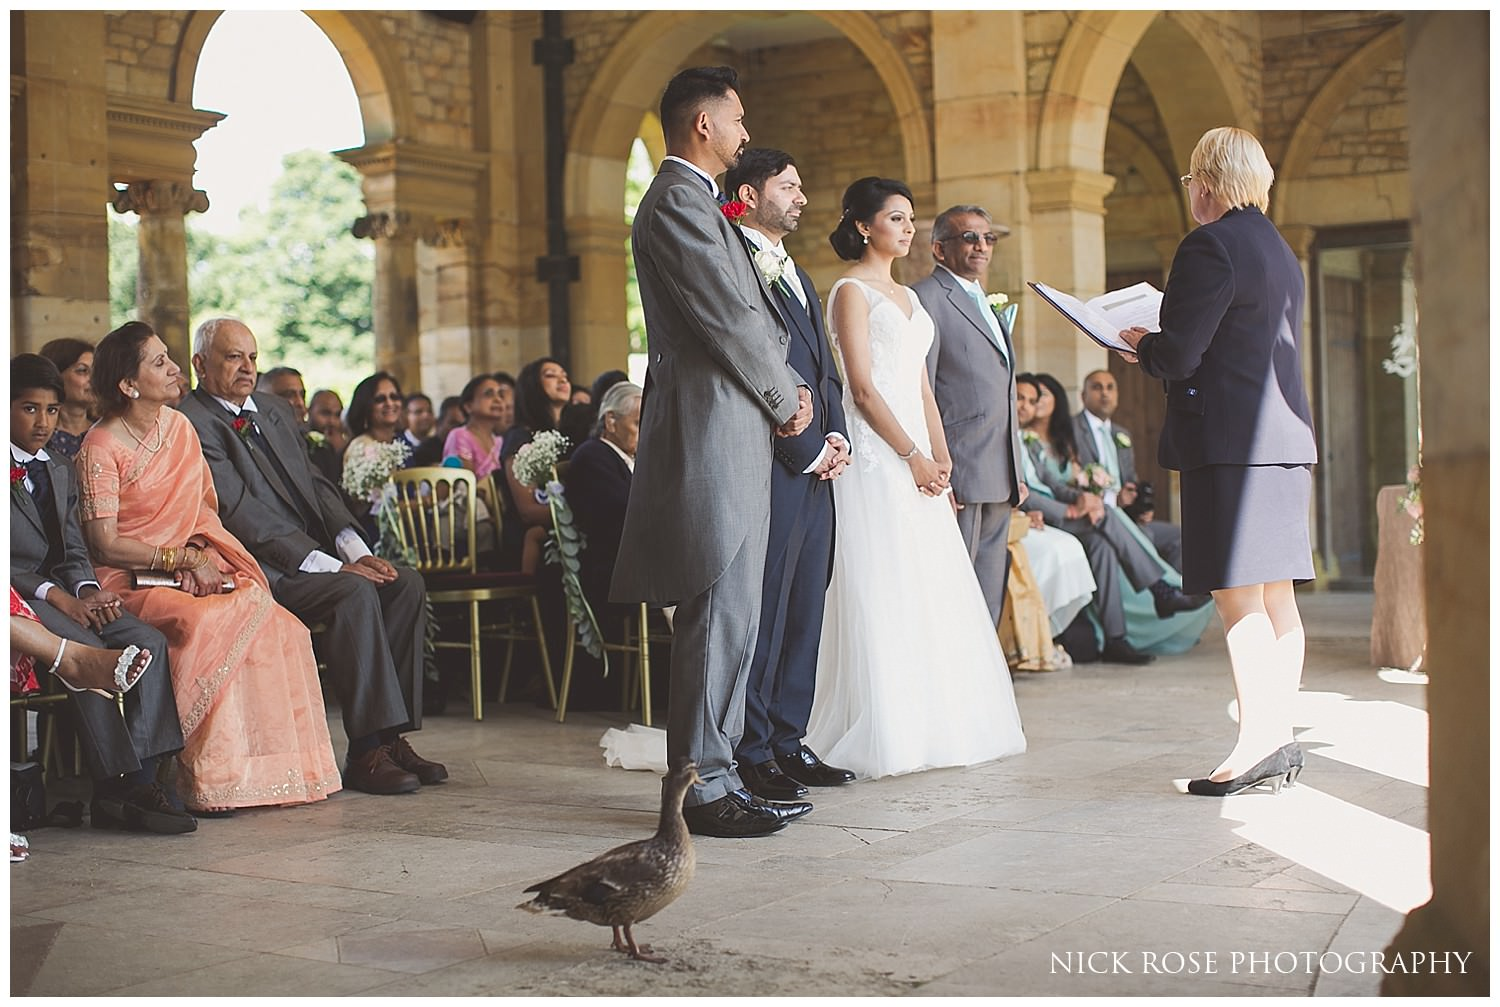 Duck watching the wedding ceremony at Hever Castle